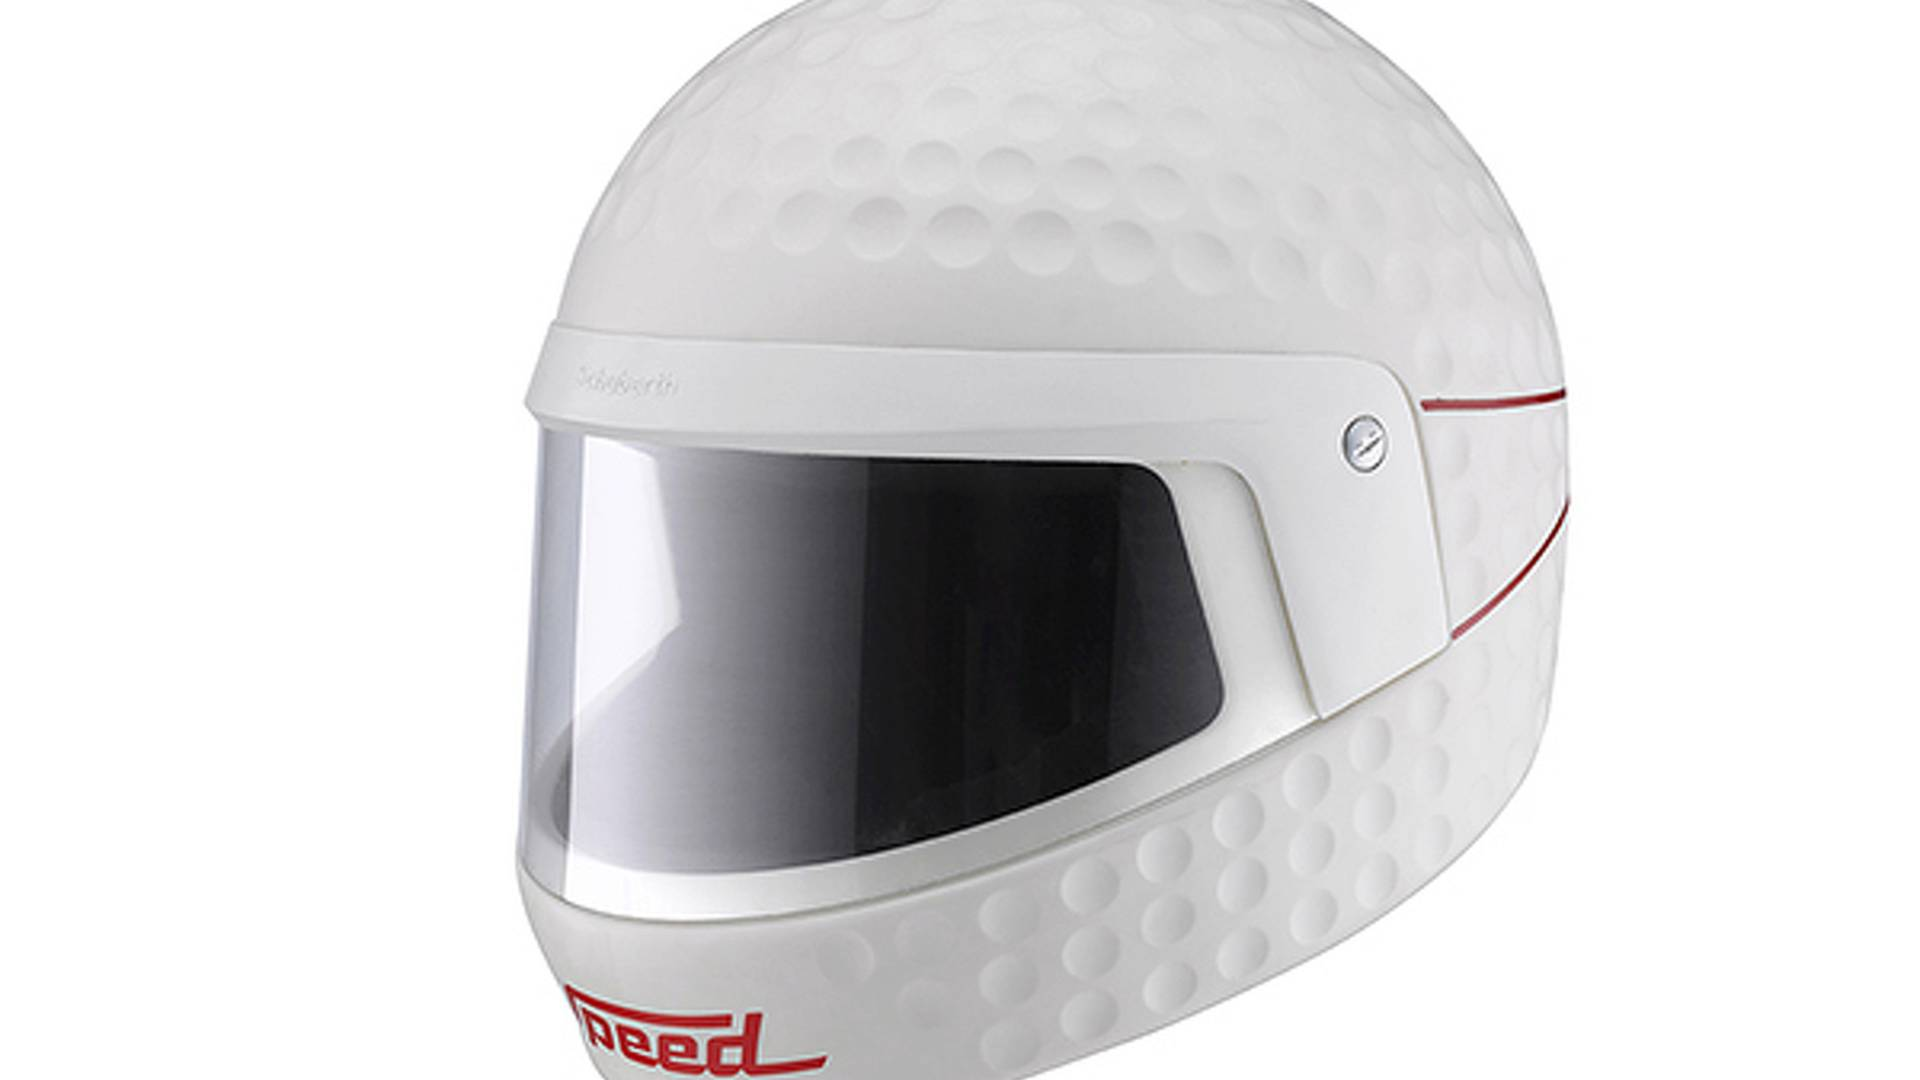 https://cdn.motor1.com/images/mgl/Bb7Vm/s1/when-motorcycle-helmets-look-like-golf-balls.jpg